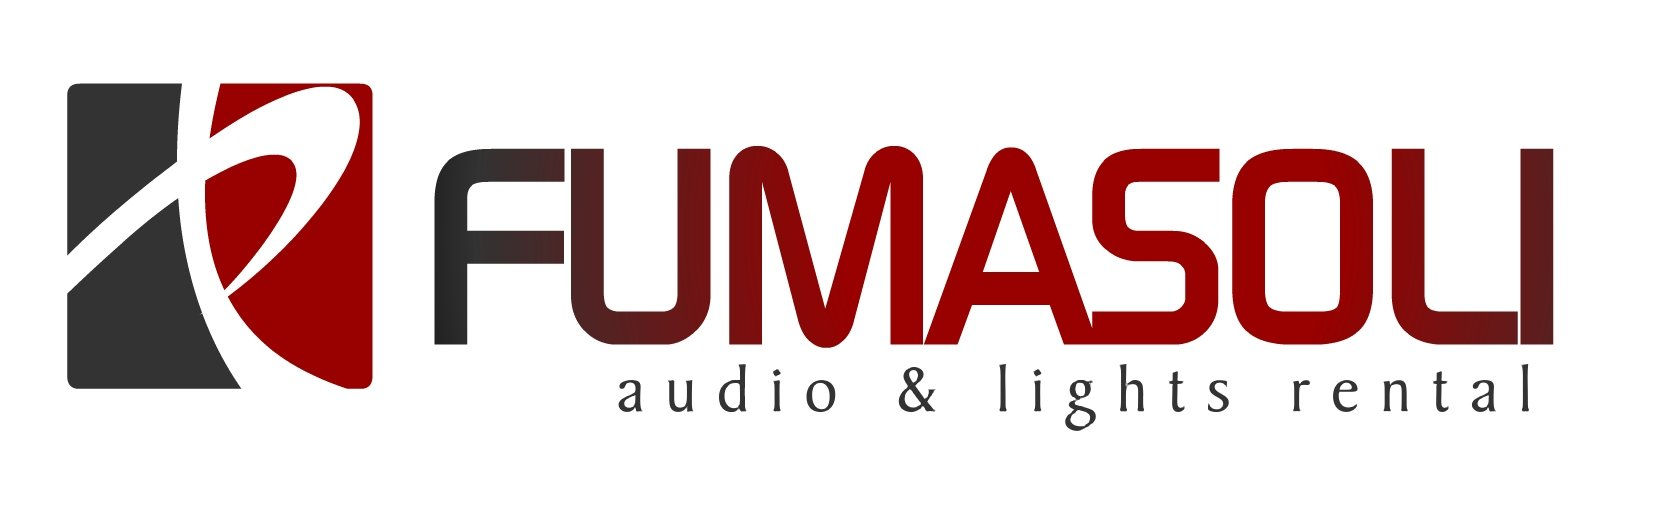 HOME fumasoli audio &  lights rental-Your Sub Title Here